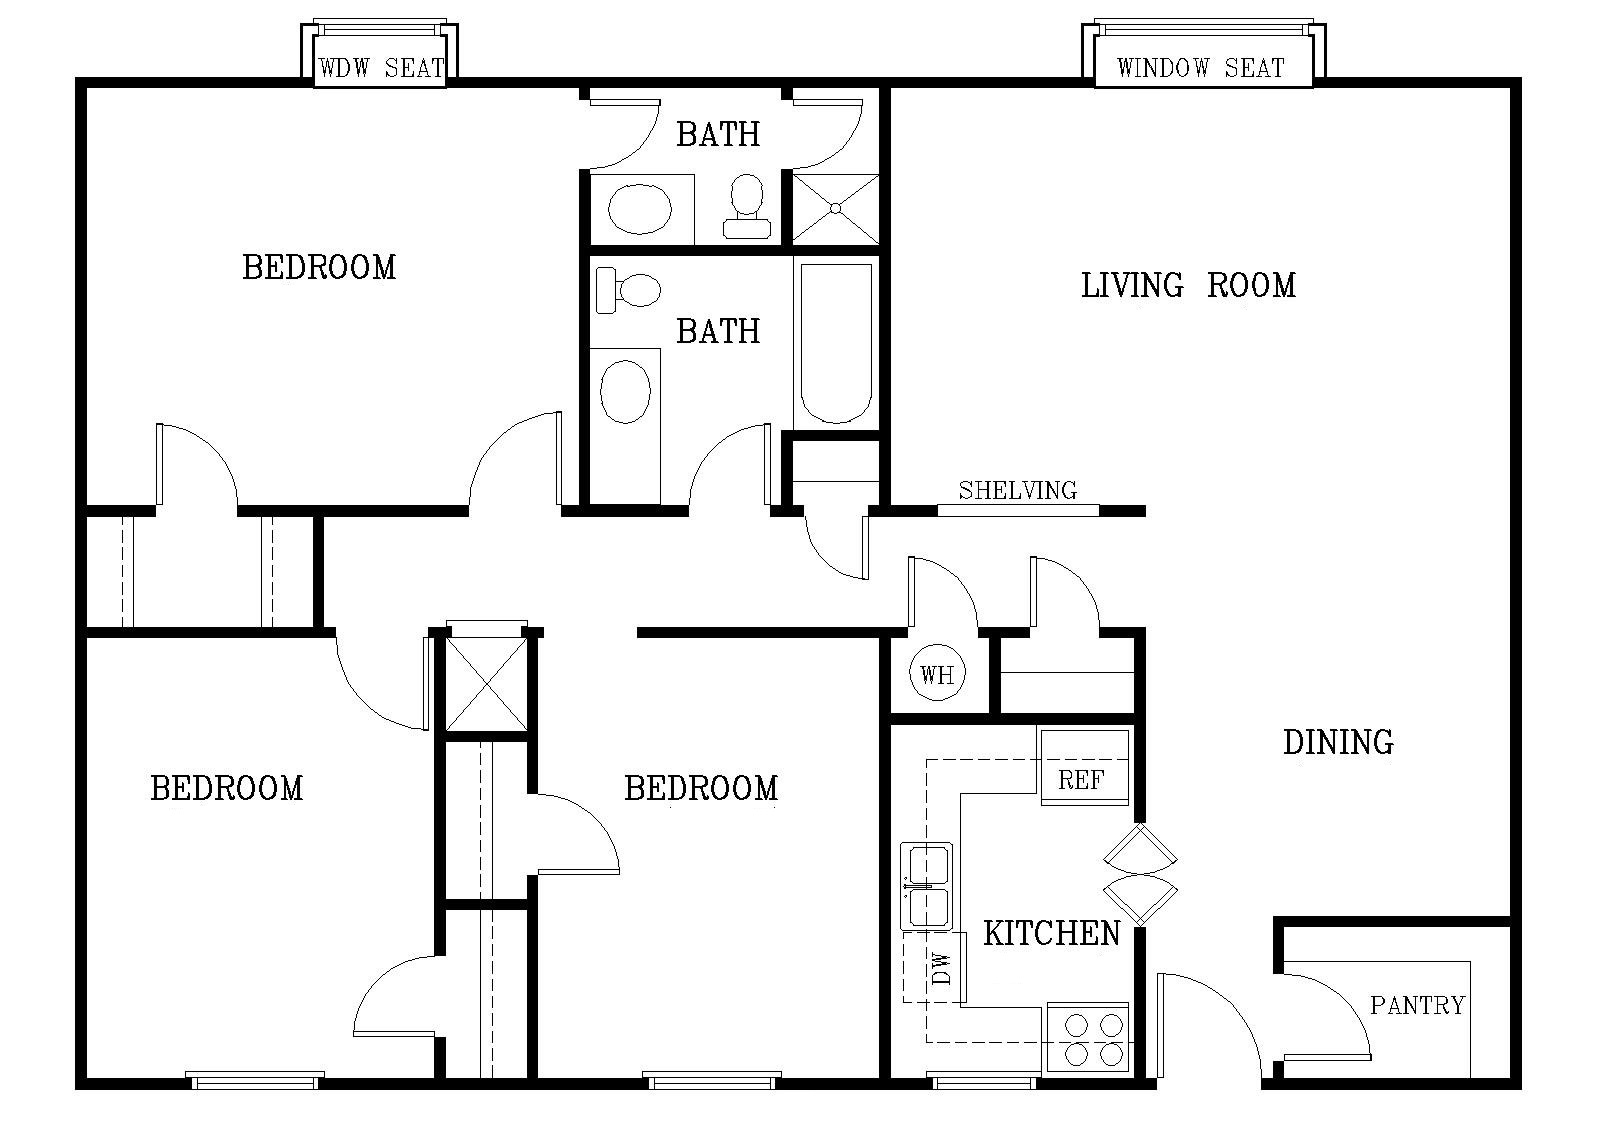 Size Of A Living Room Ikea Standard In Residential Buildings The Civil Art